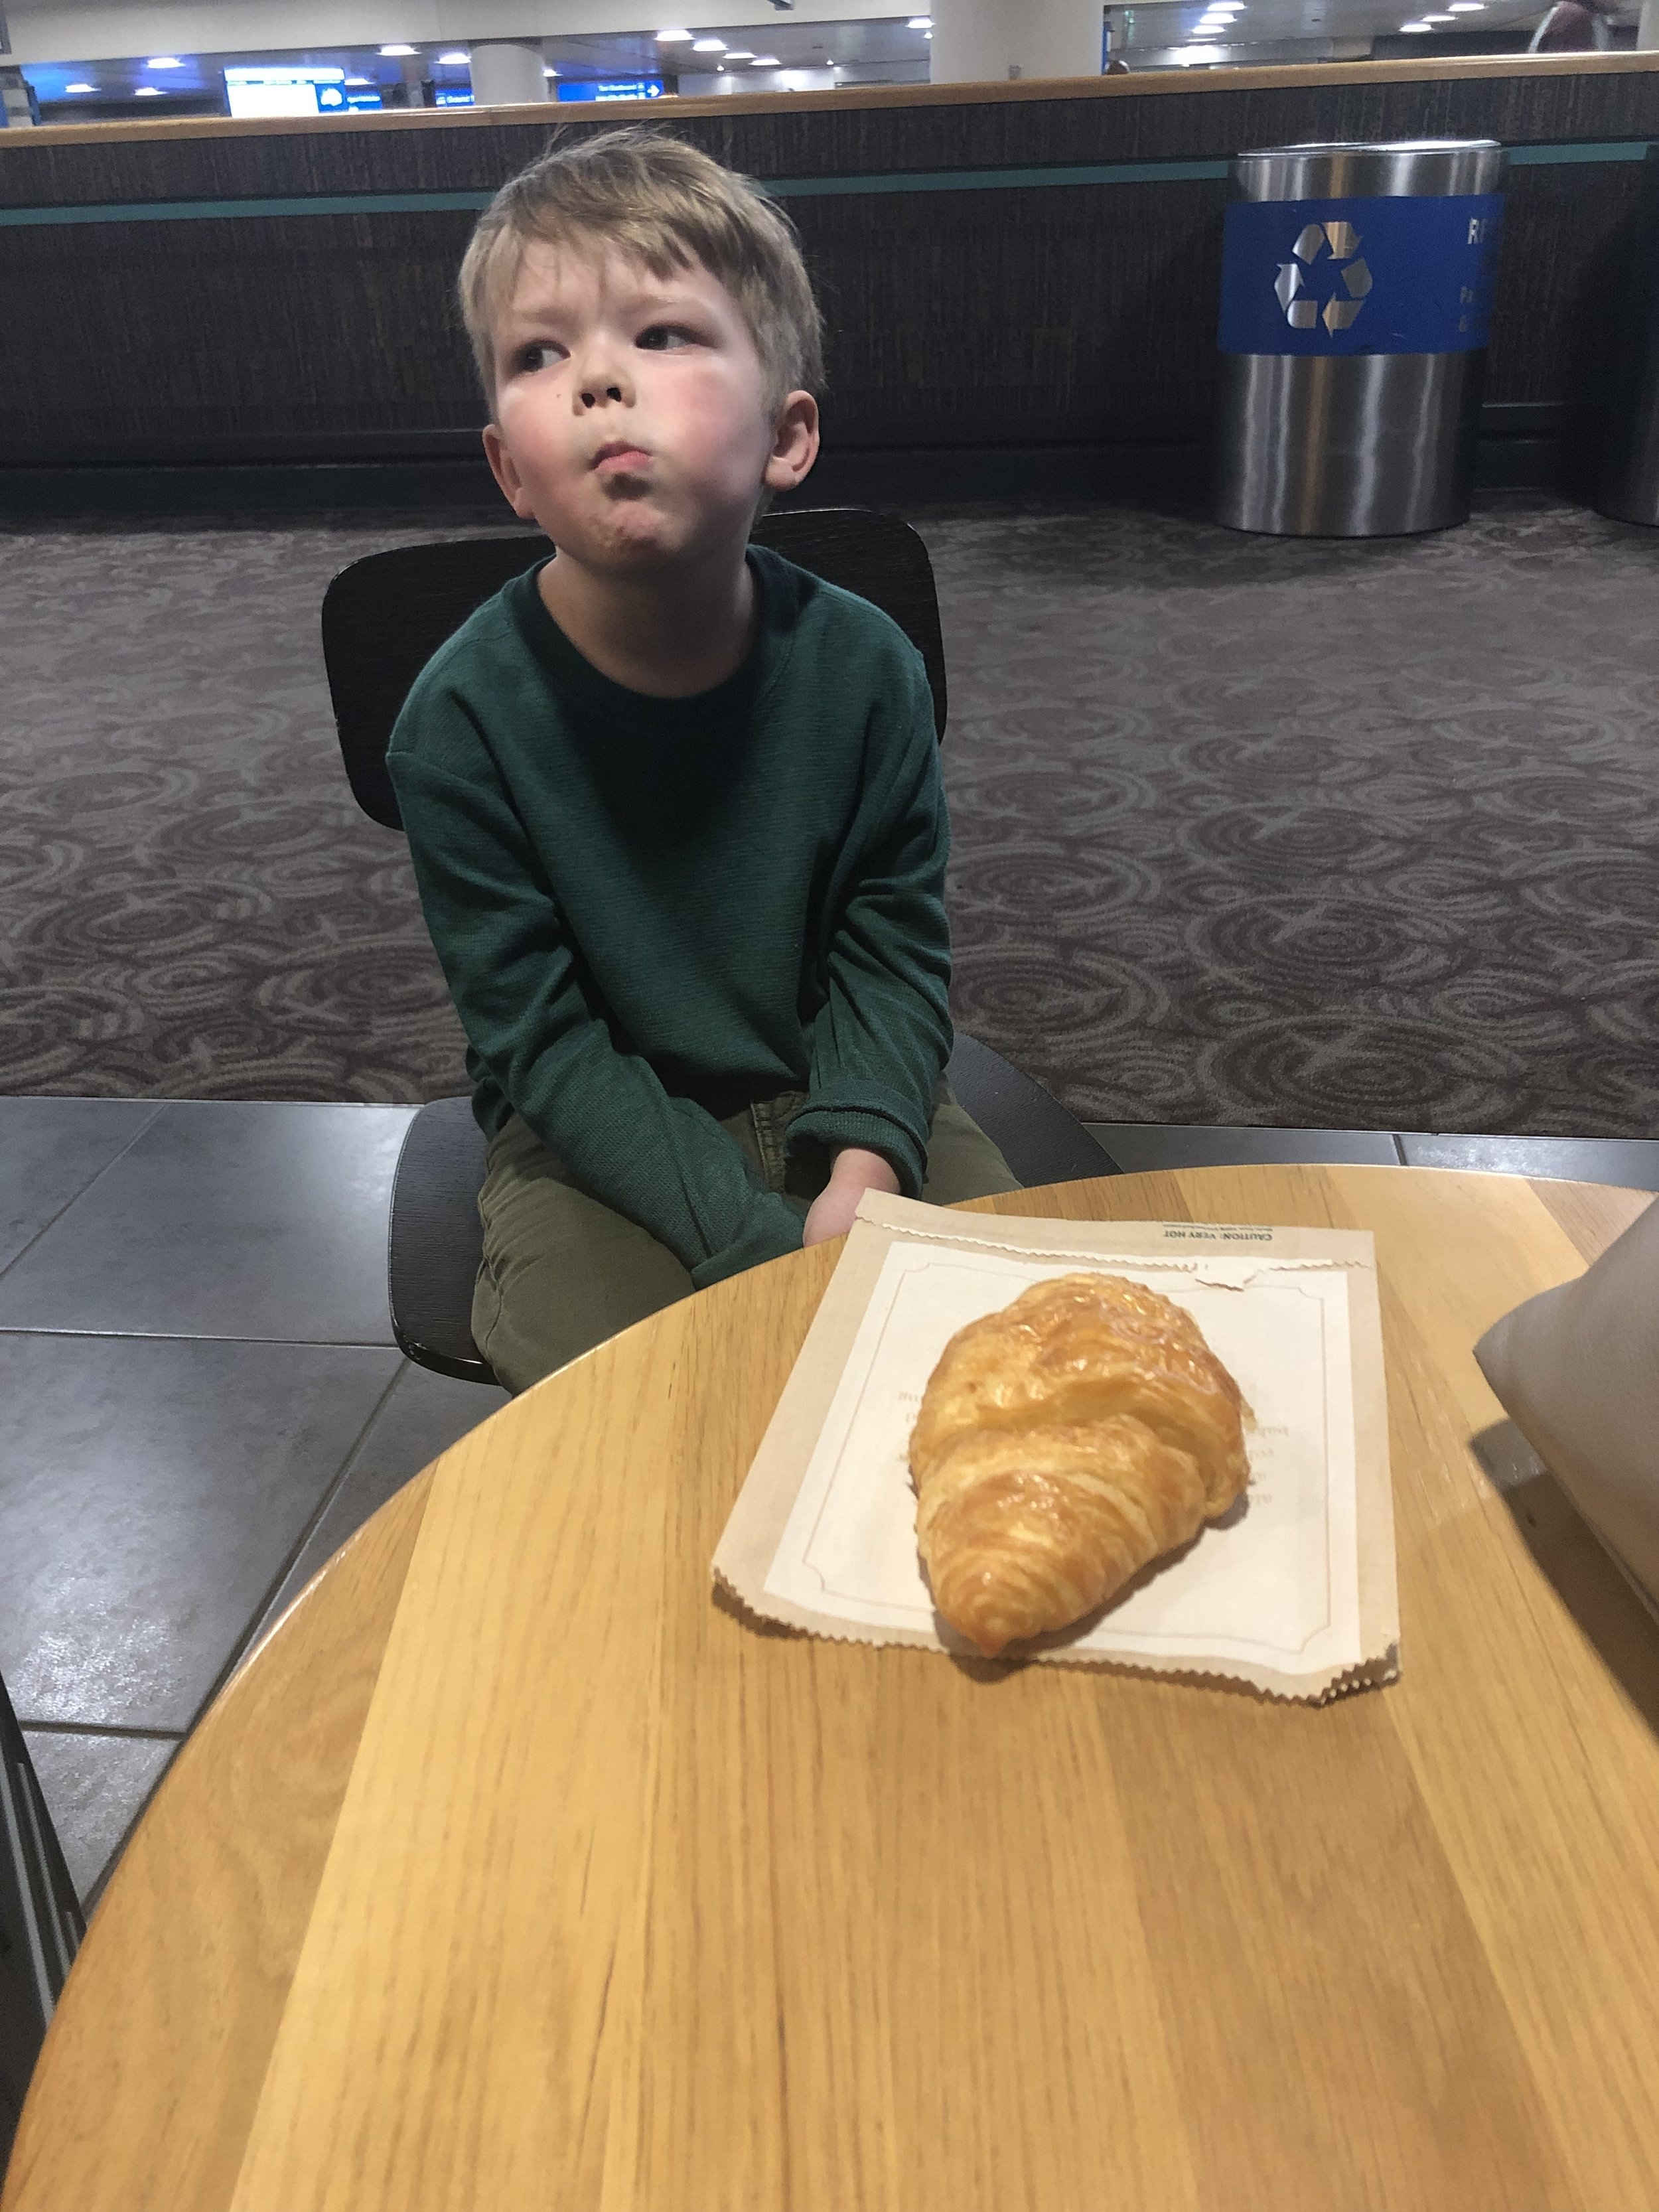 Airport Starbucks, and a croissant that would play an upcoming role.